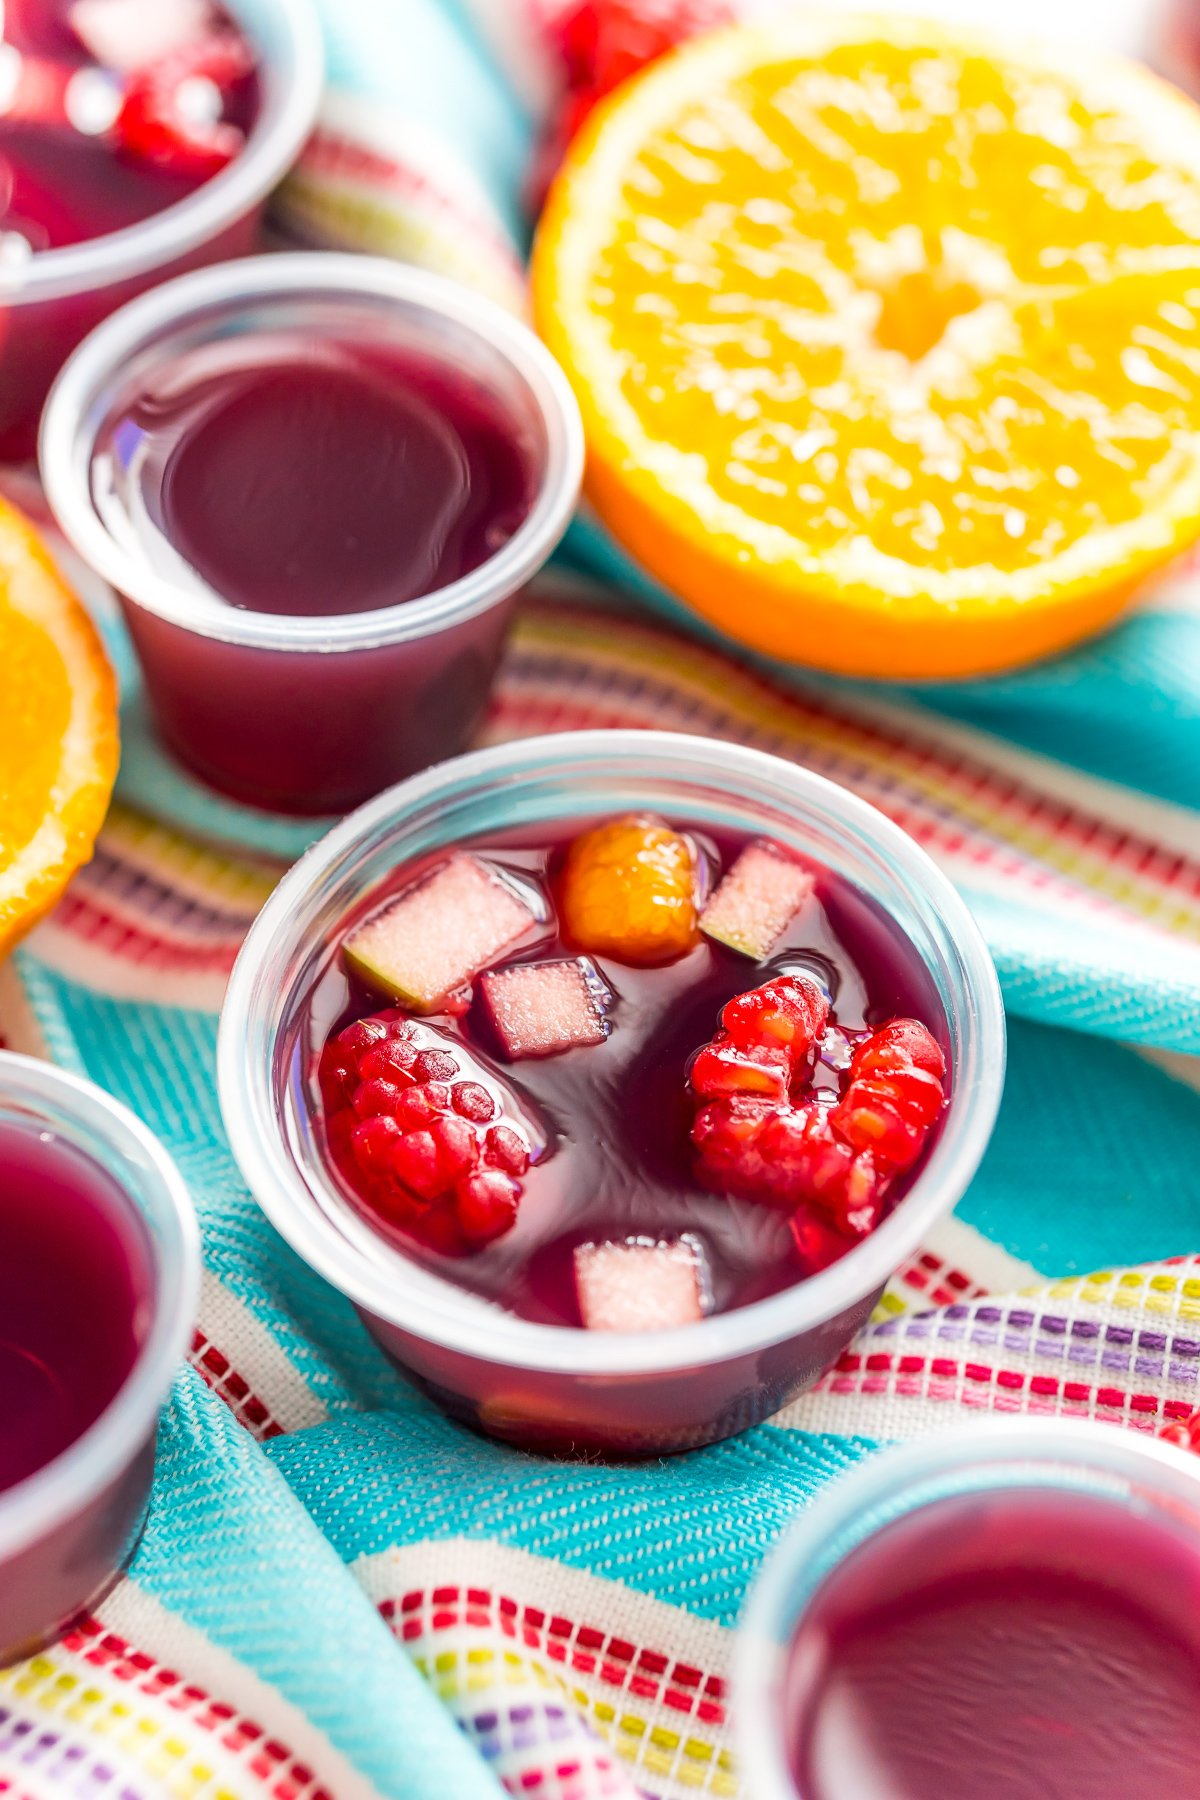 Sangria jello shots on a blue striped napkin with more jello shots and fruit scattered around.